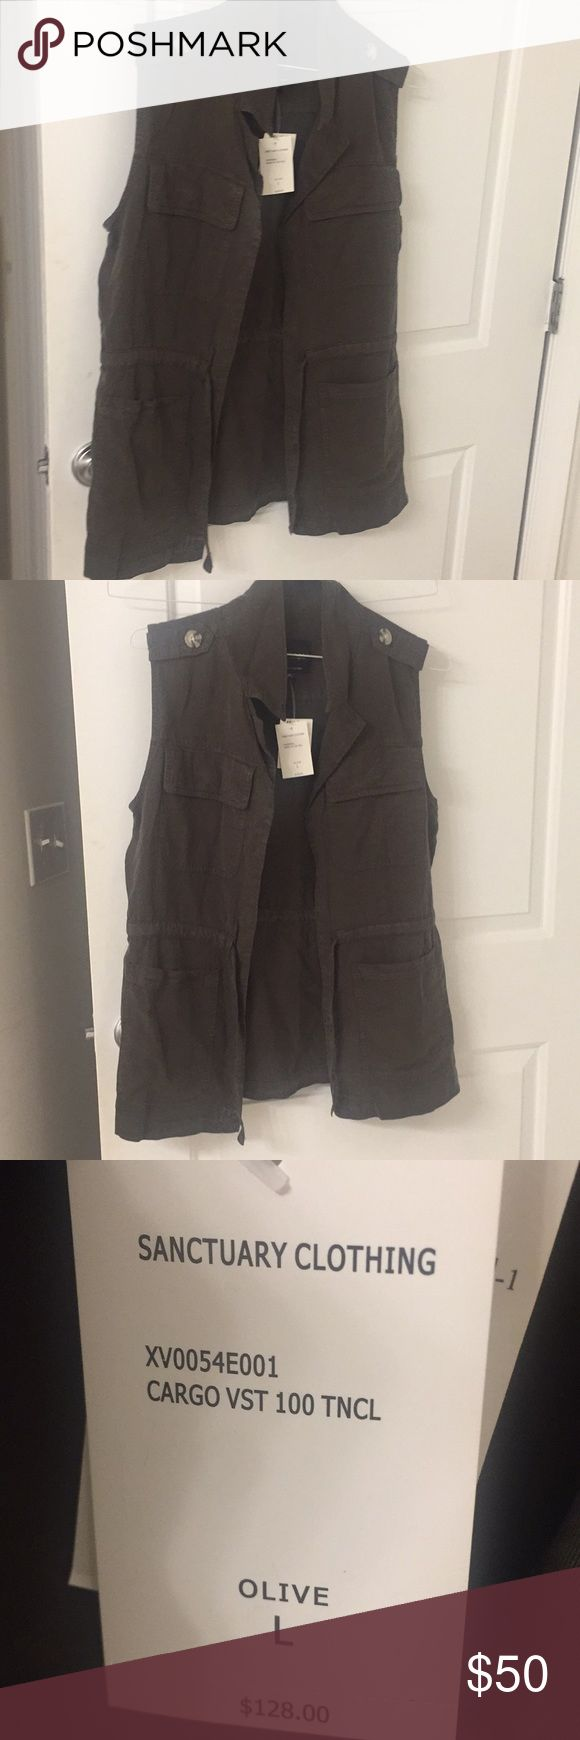 Sanctuary green cargo vest Sanctuary green cargo vest  Brand new w tag For some reason it photographs dark like a grey but it is a true dark olive green like the main photo Sanctuary Jackets & Coats Vests